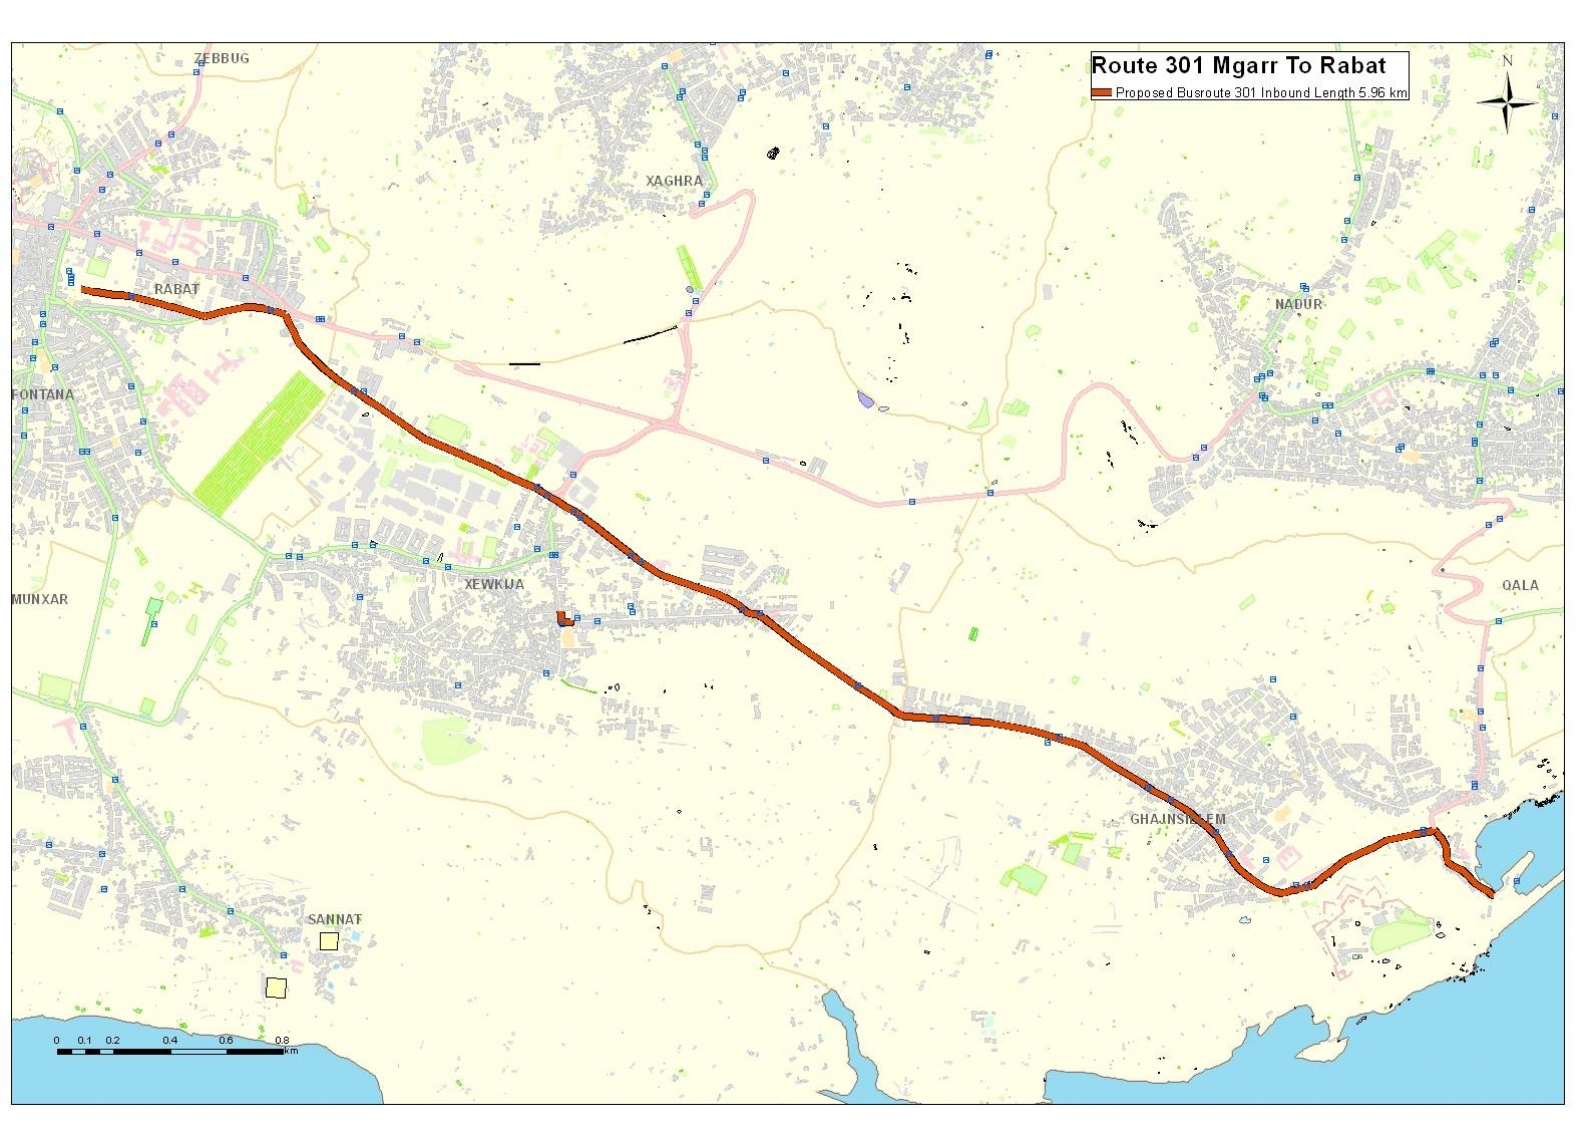 Land-current-network-routes-and-schedules-Gozo-1